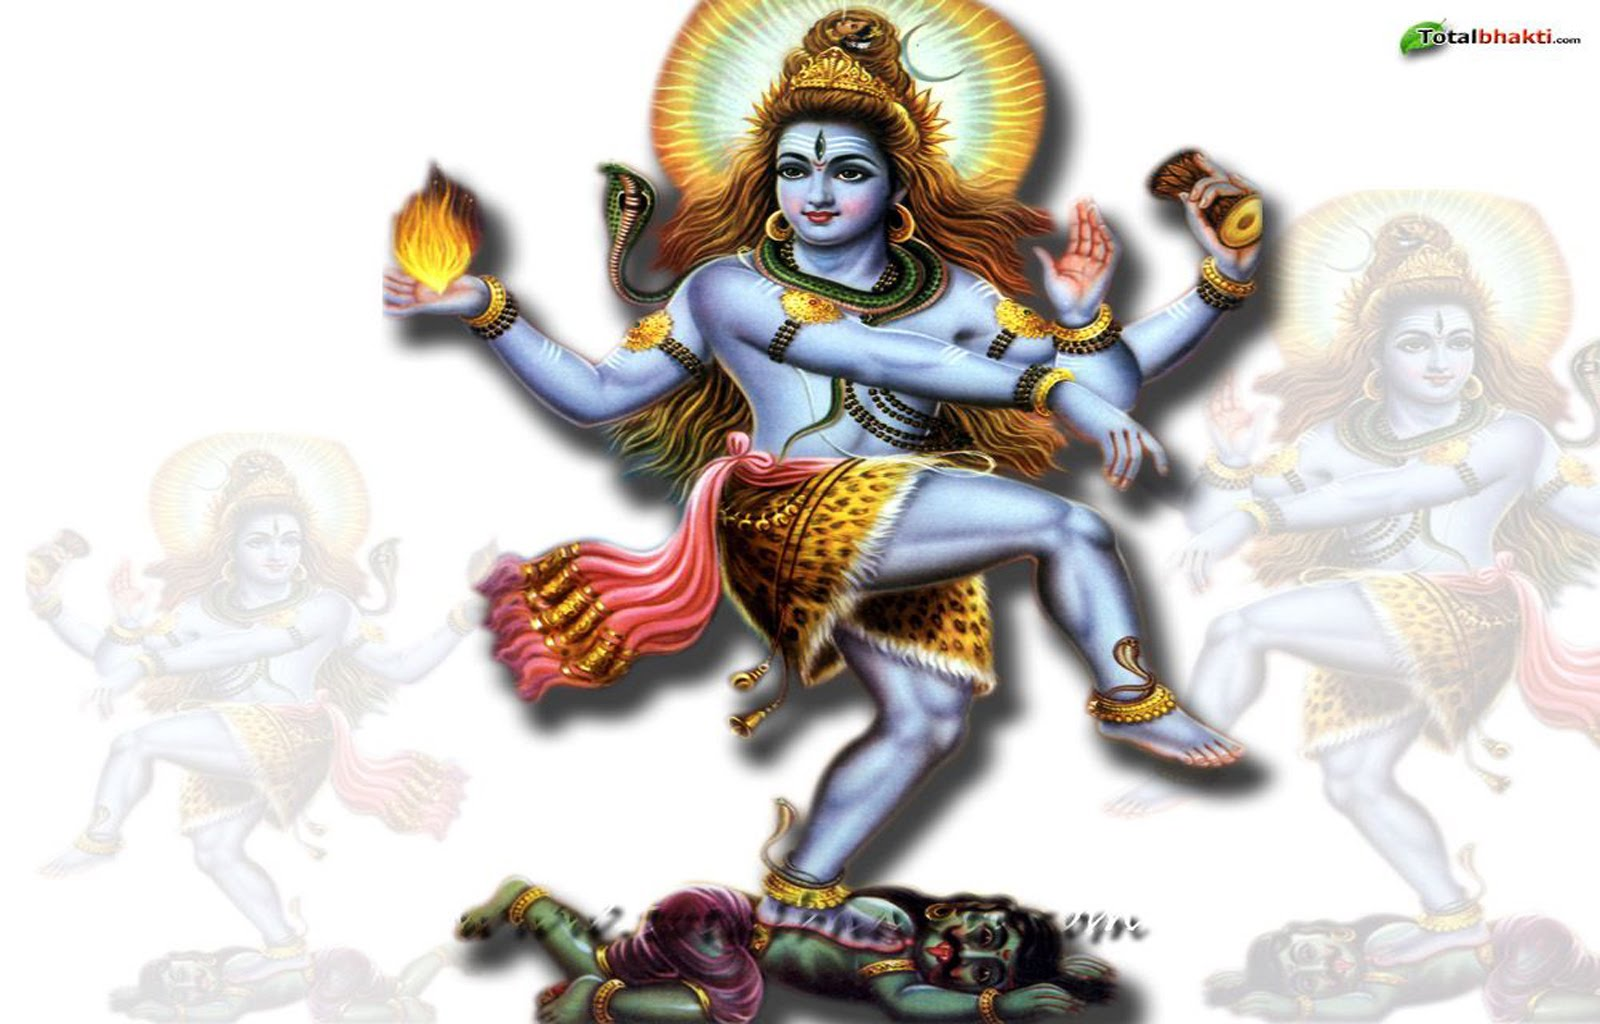 Beautiful Wallpaper Lord Nataraja - Lord+Shiva+Dance  Photograph_428798.jpg